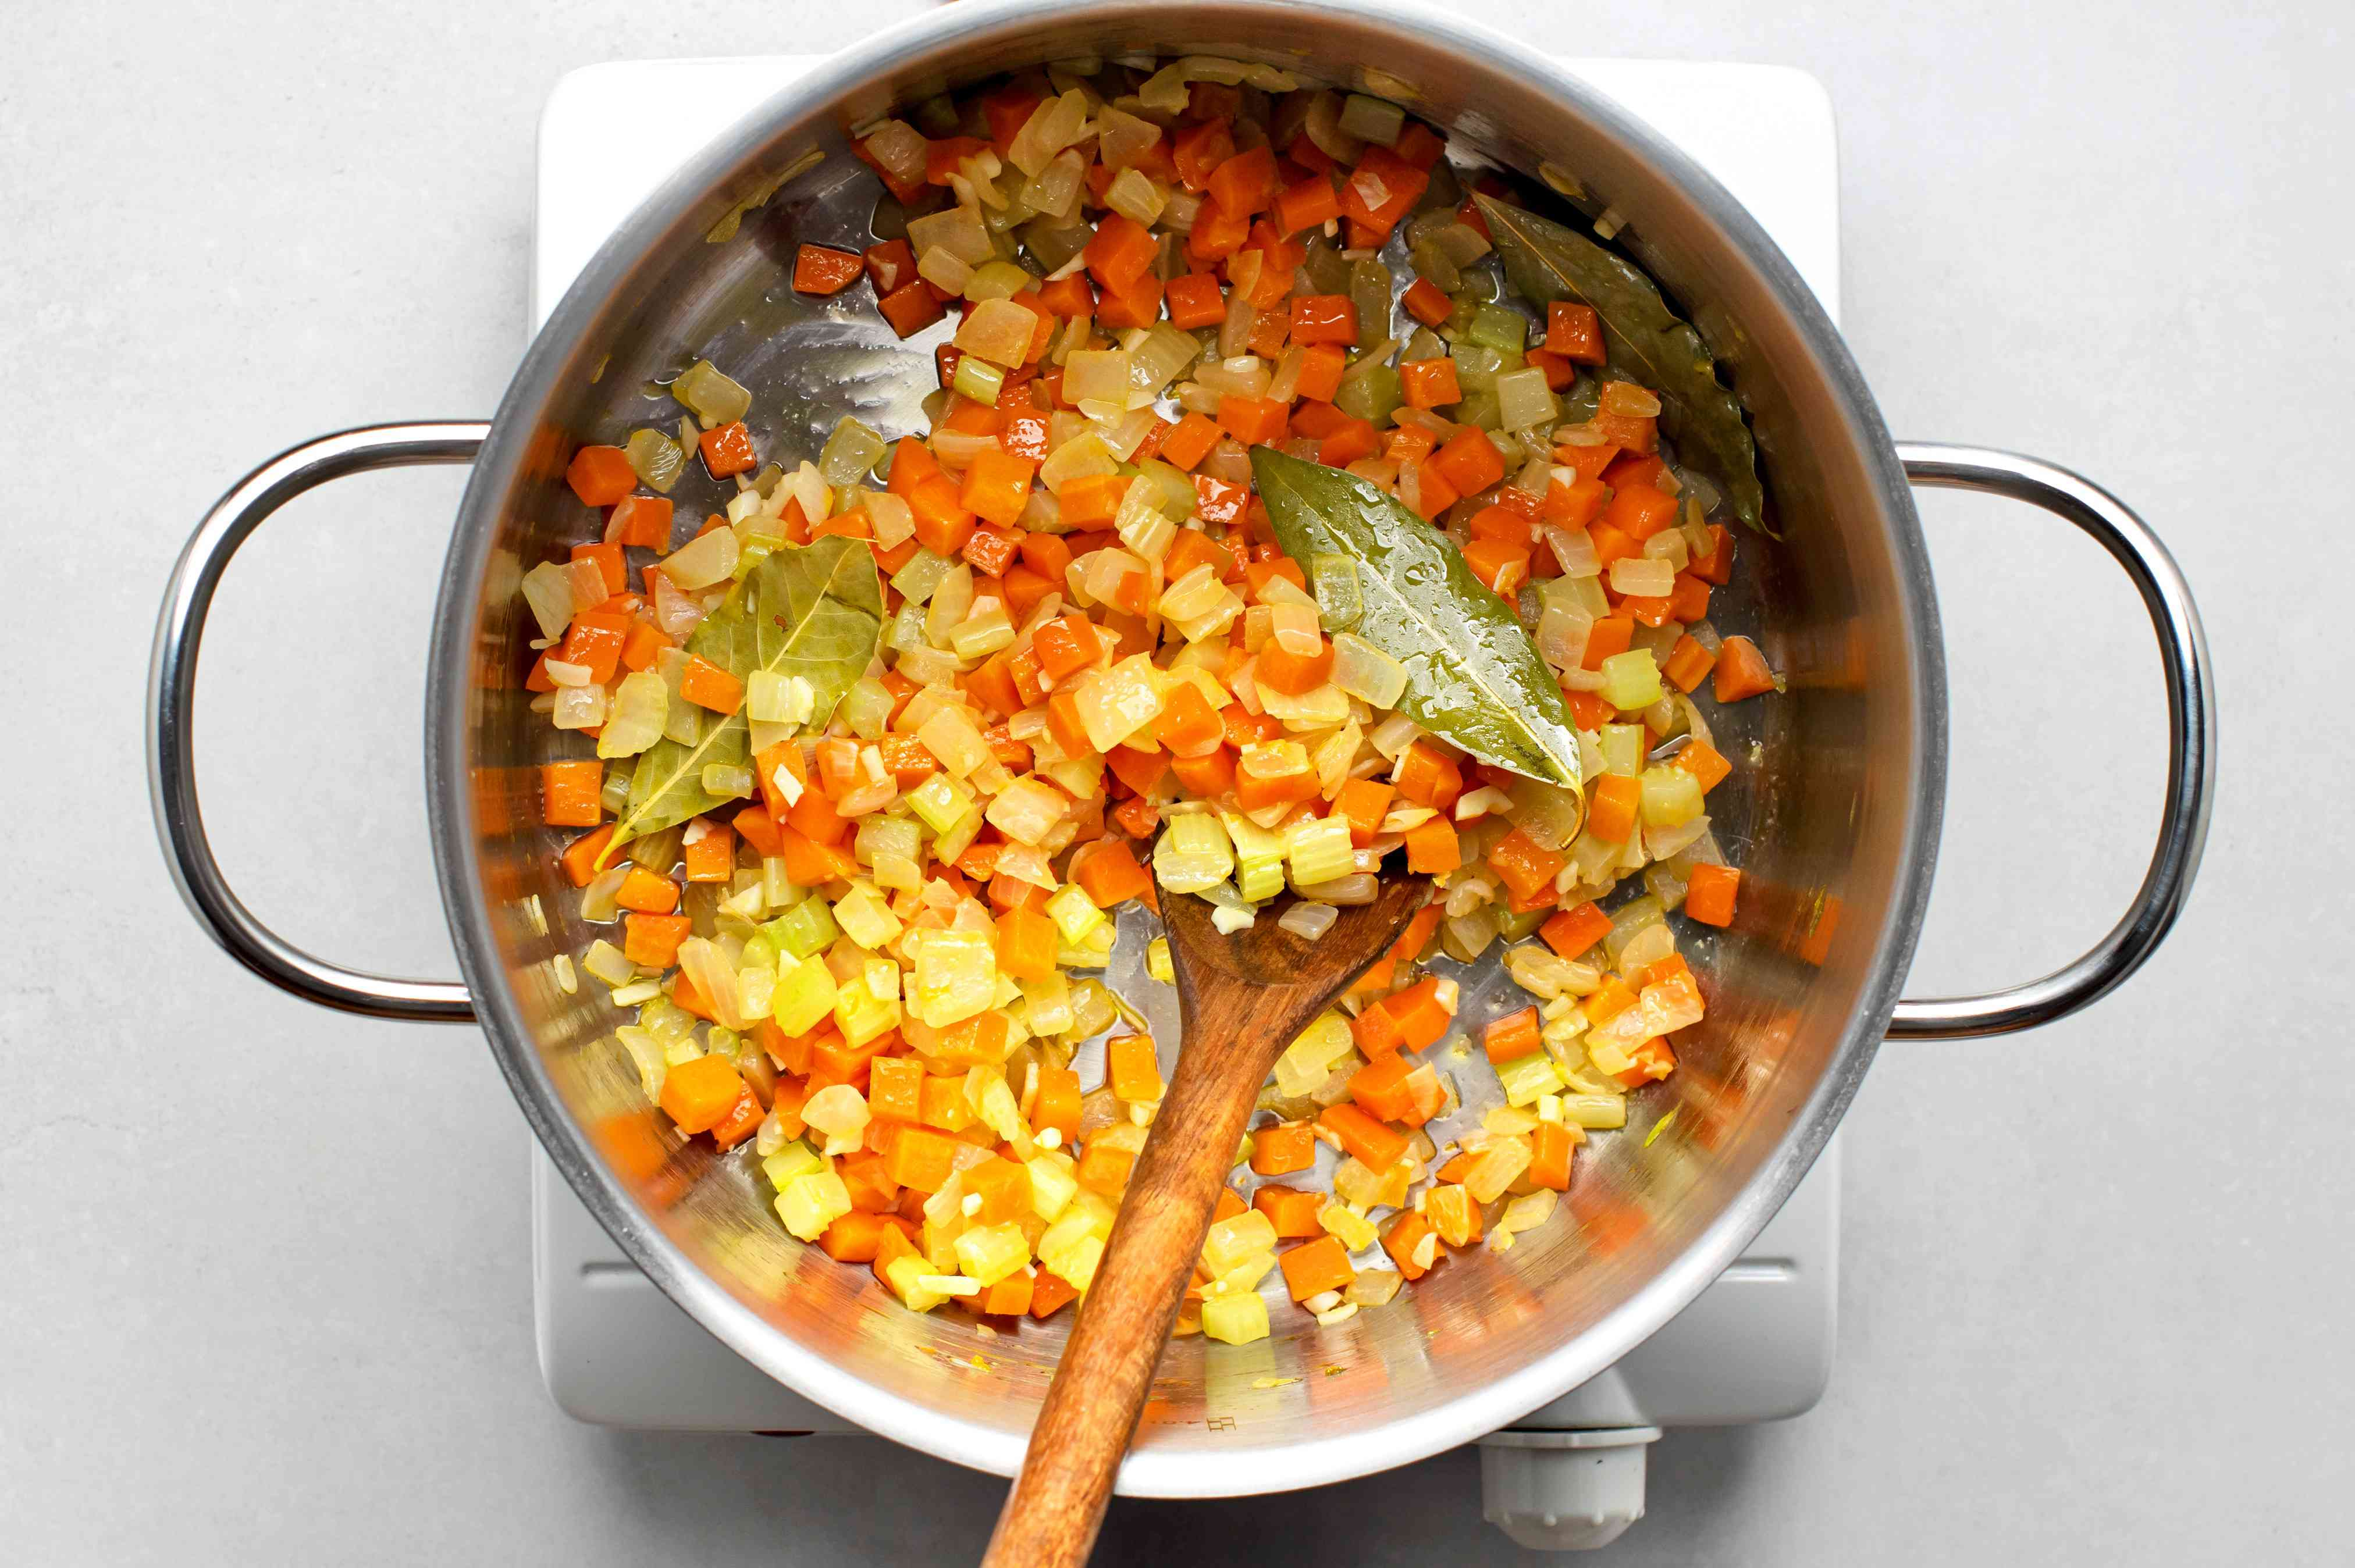 Add the onion, celery, carrots, garlic, and bay leaves and saute in the pot